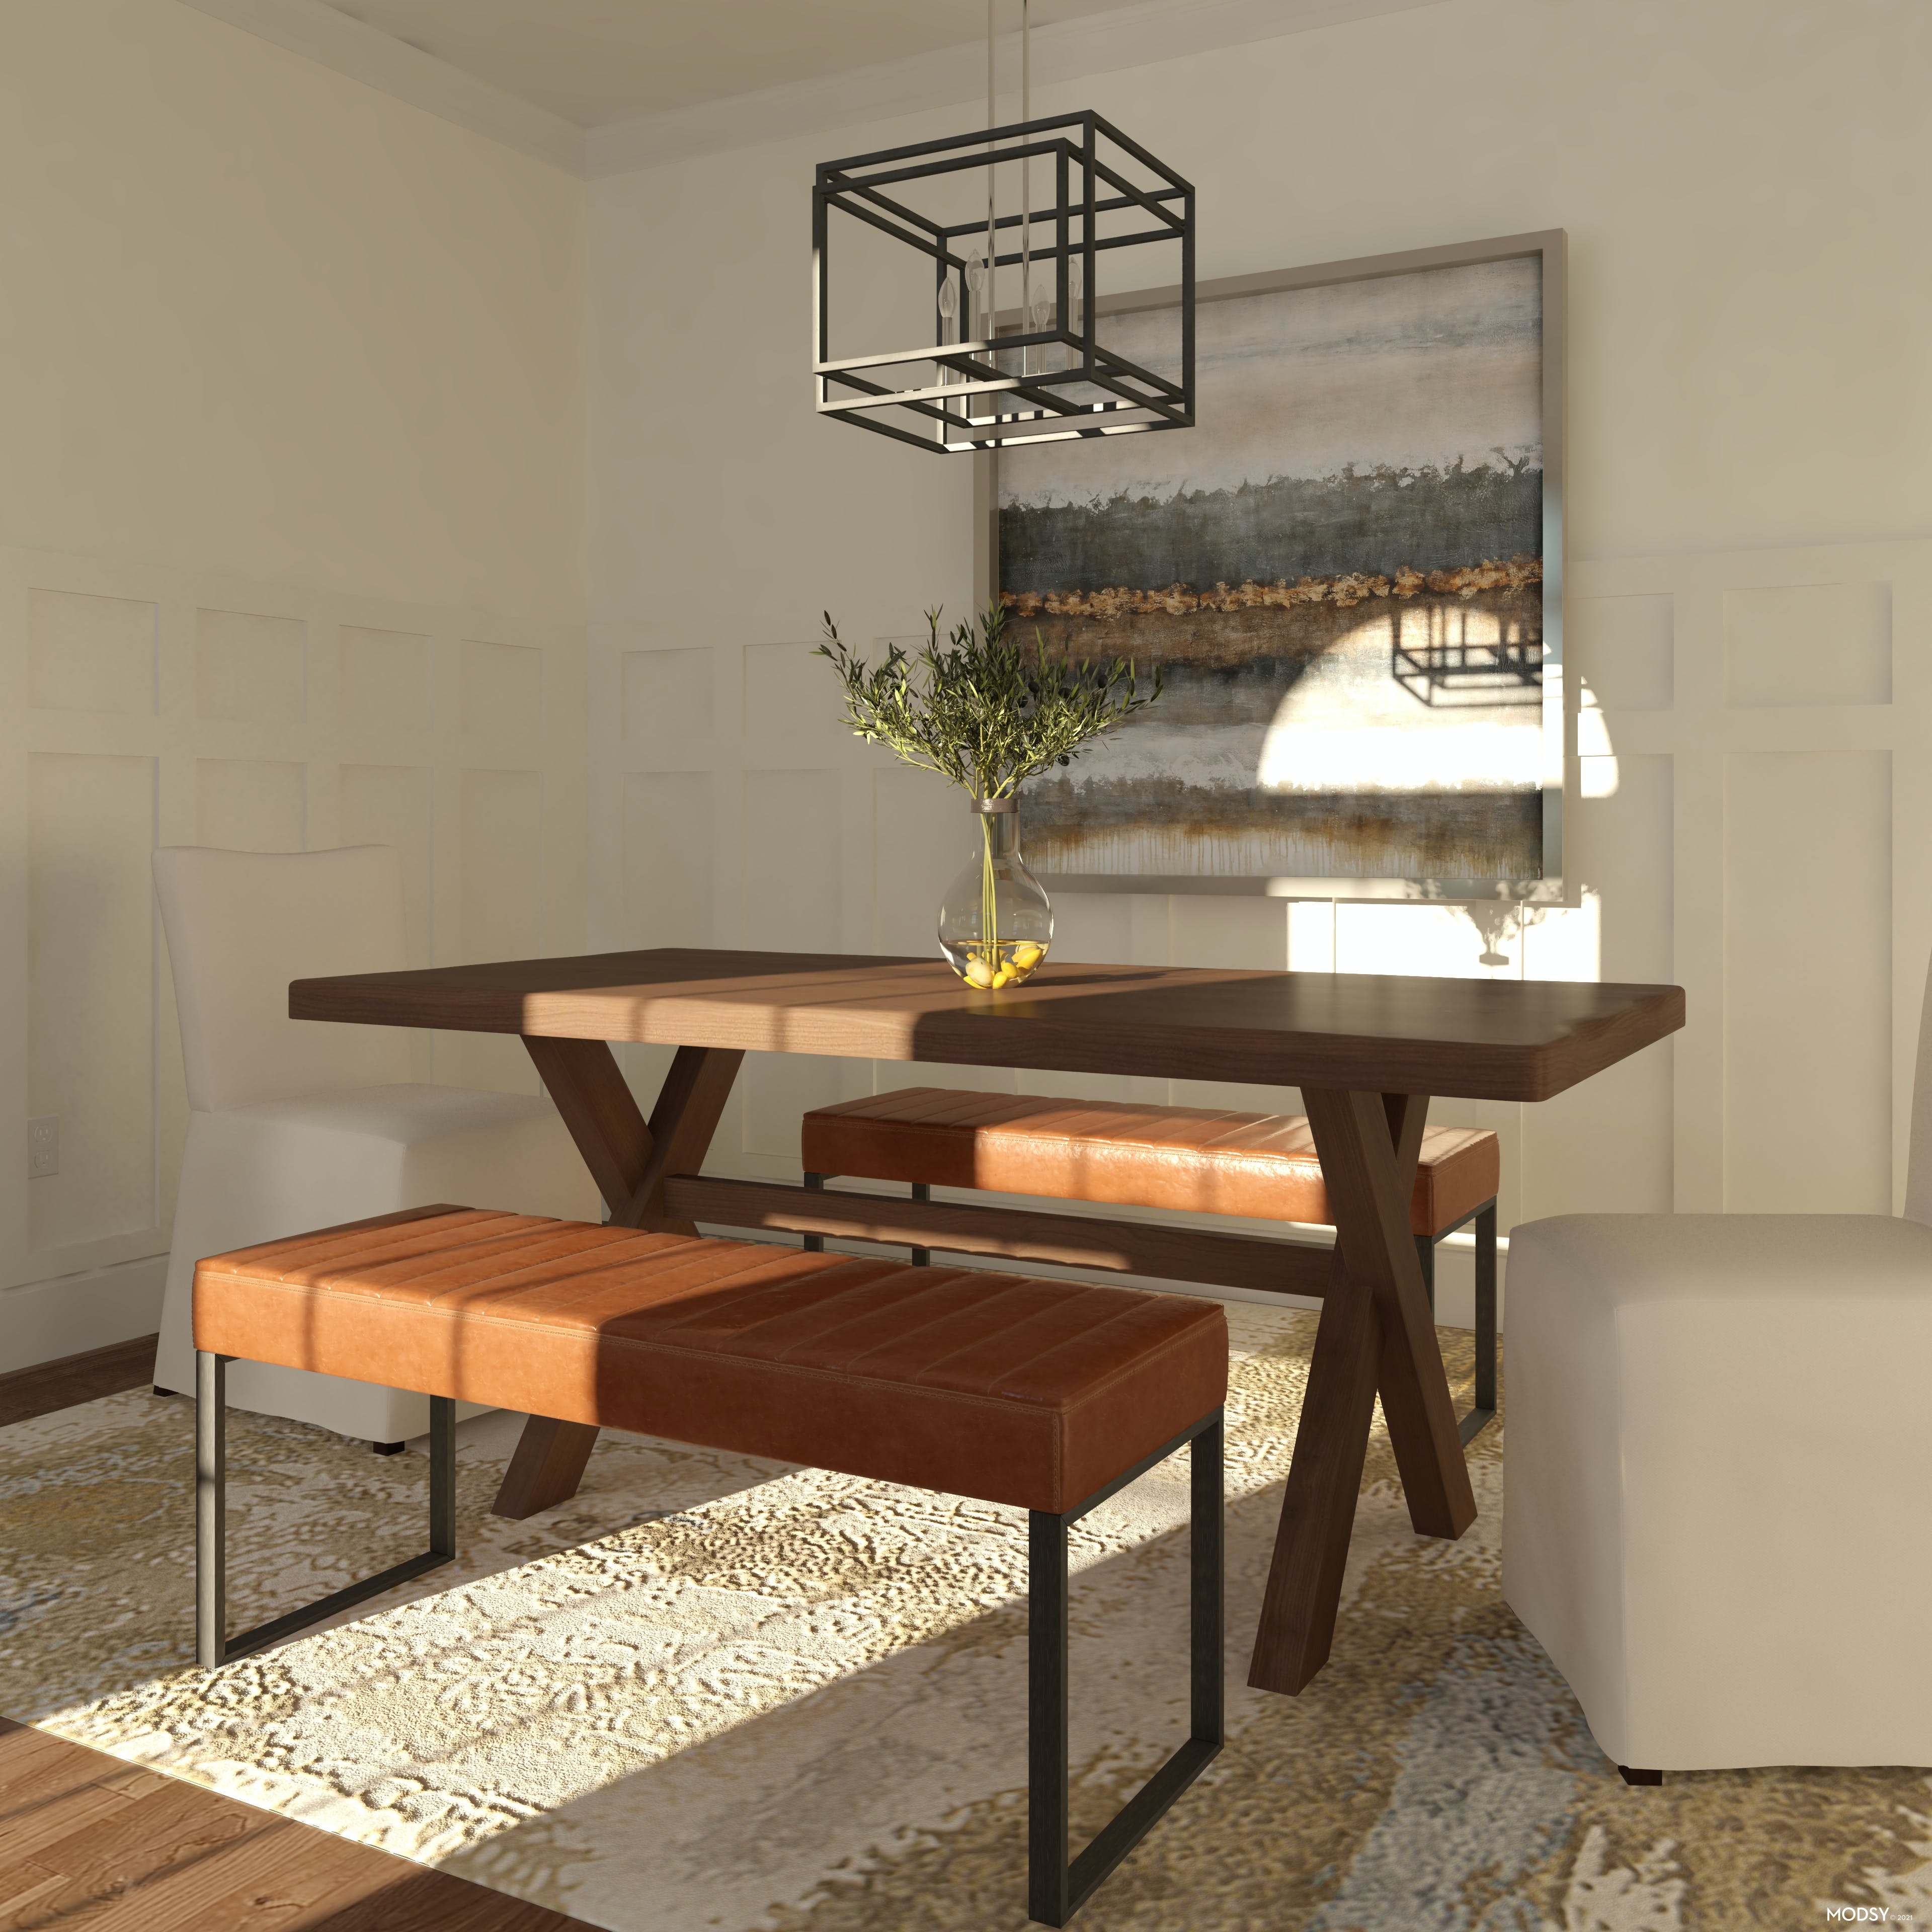 Small Space Solution: Dining Bench